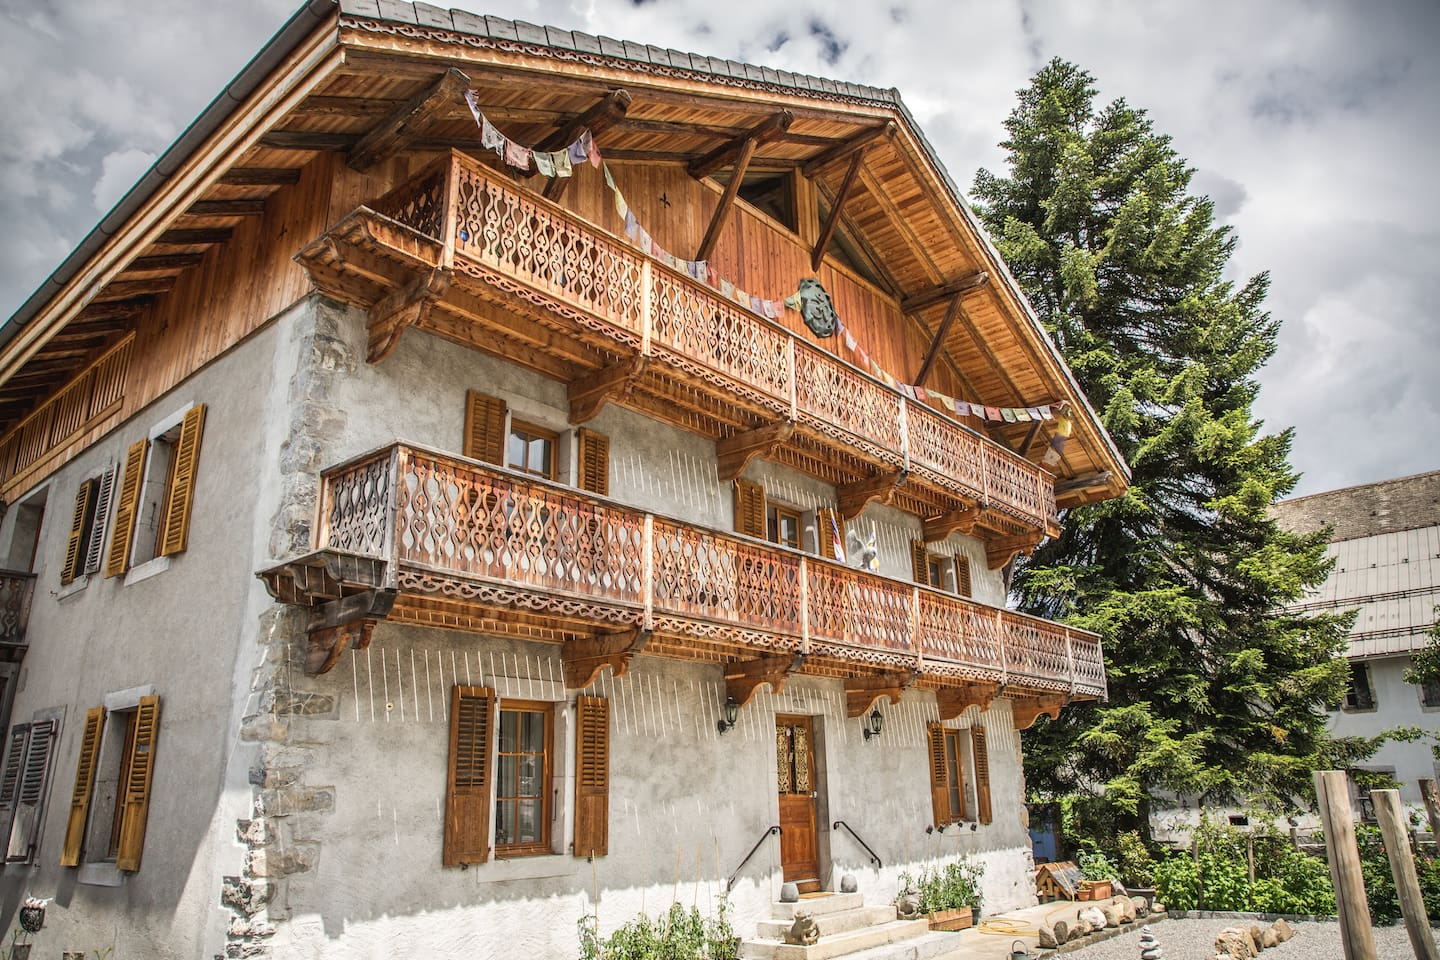 Chalet  Le Badney 1881 - private apartments for up to 8 guests